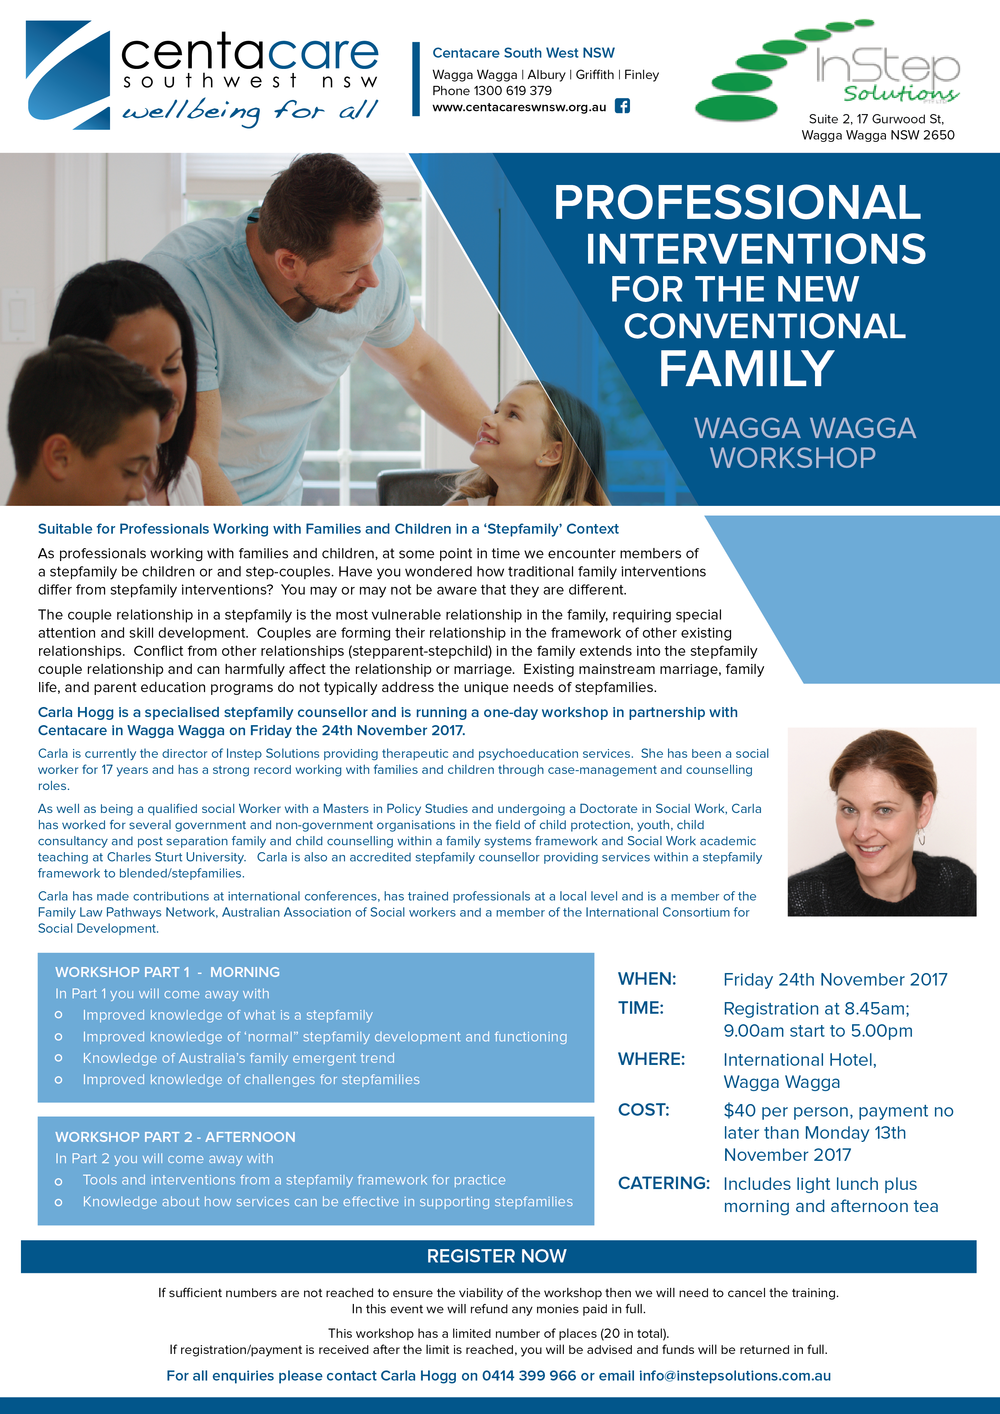 Professional Interventions for the New Conventional Family 17-01.png